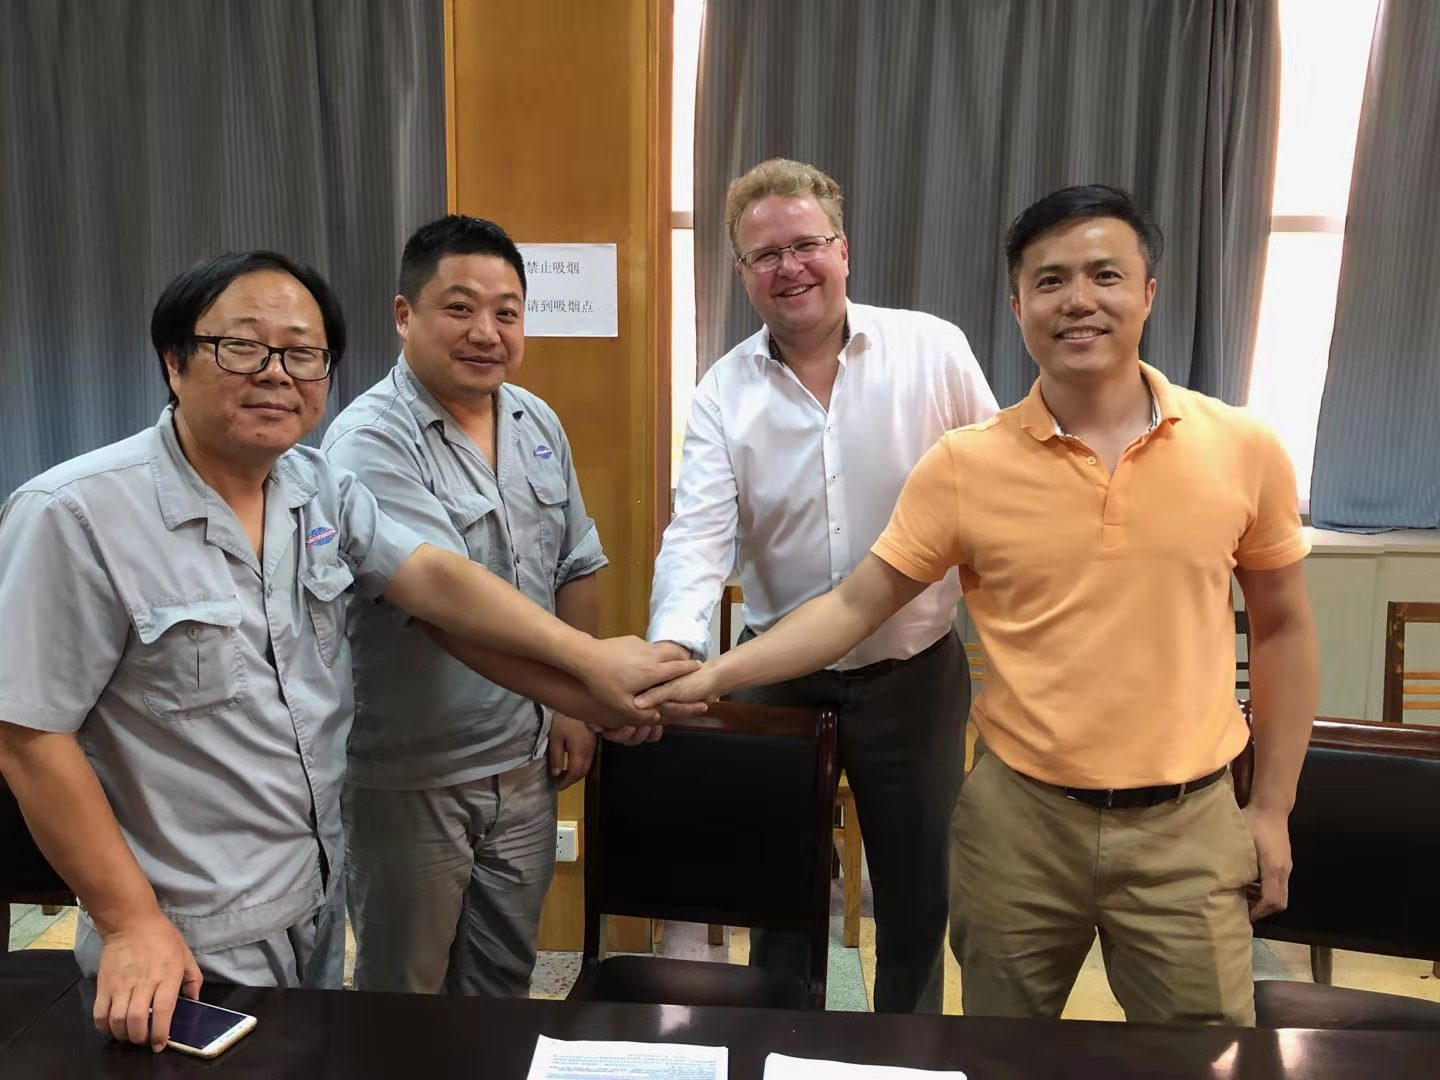 From left: Li Fei (Deputy Director, Purchase Dept., Jinling Shipyard), Deng Yi (Purchasing Project Manager, Jinling Shipyard), John Weierud (Director, Marine Automation, Valmet) and Curry Qian (Sales Manager, Marine Business, China, Automation, Valmet)